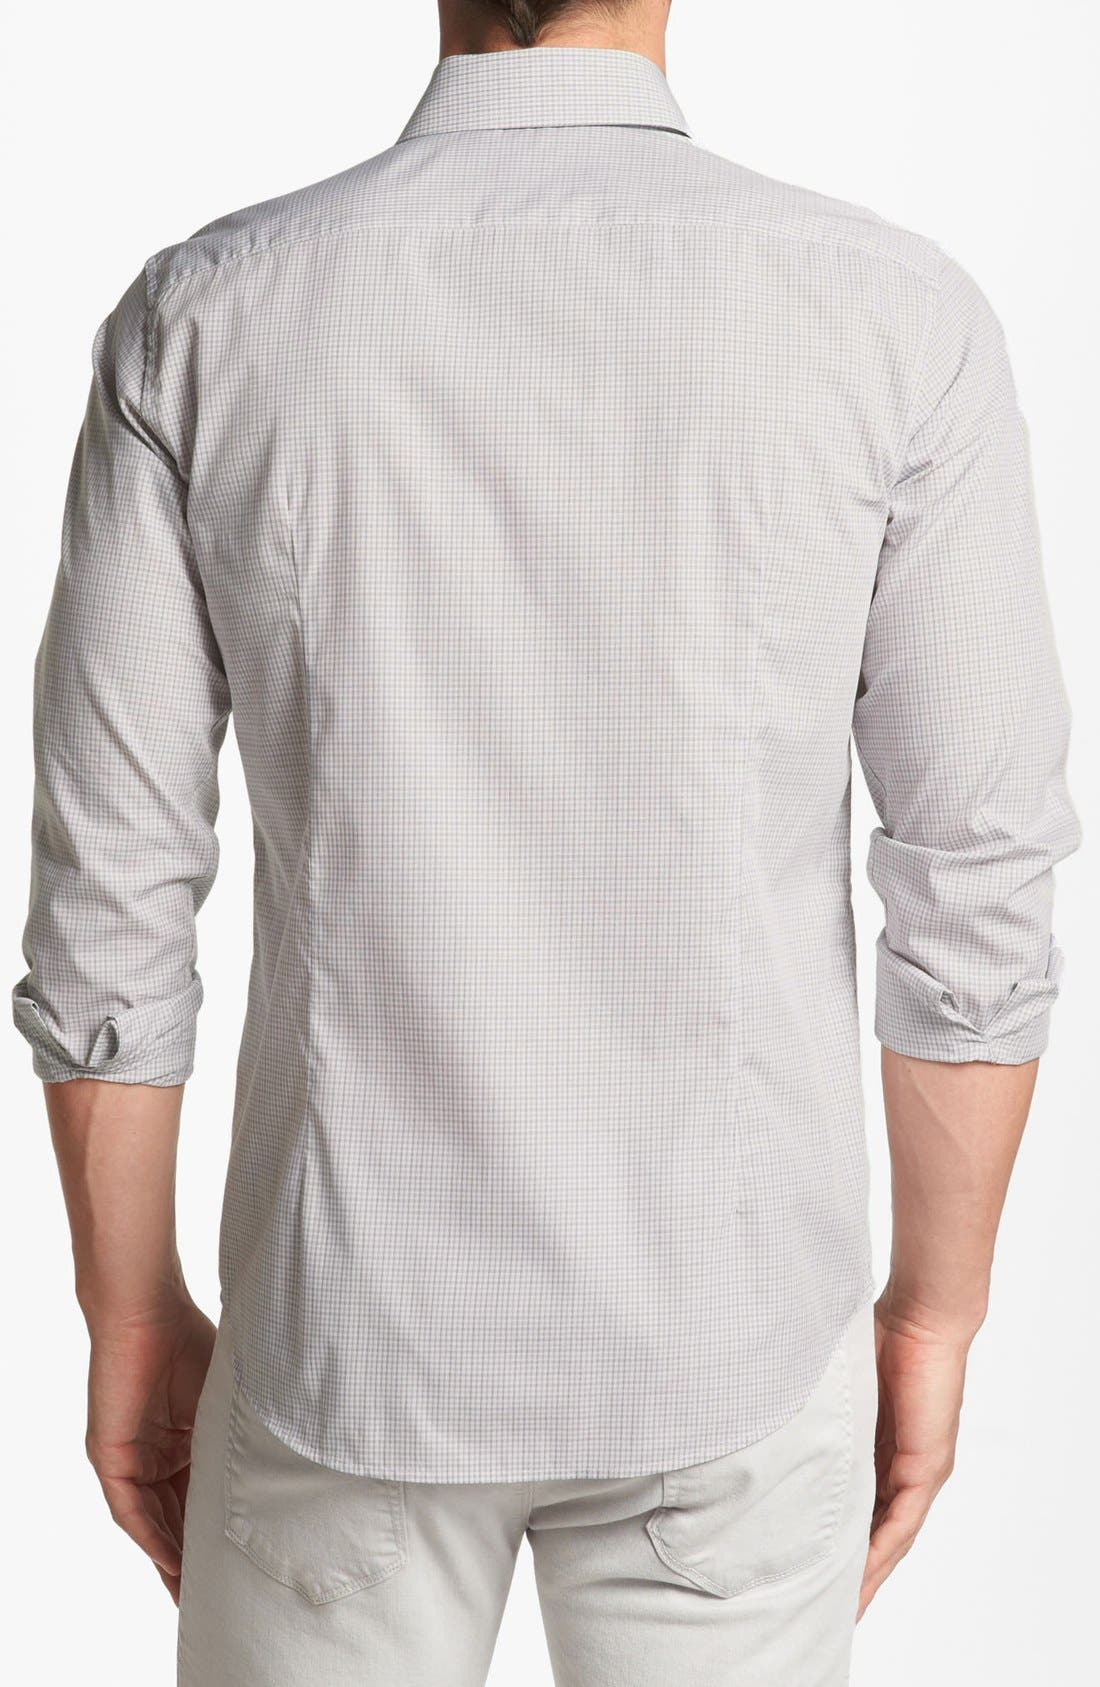 Alternate Image 2  - BOSS HUGO BOSS 'Ronny' Slim Fit Sport Shirt